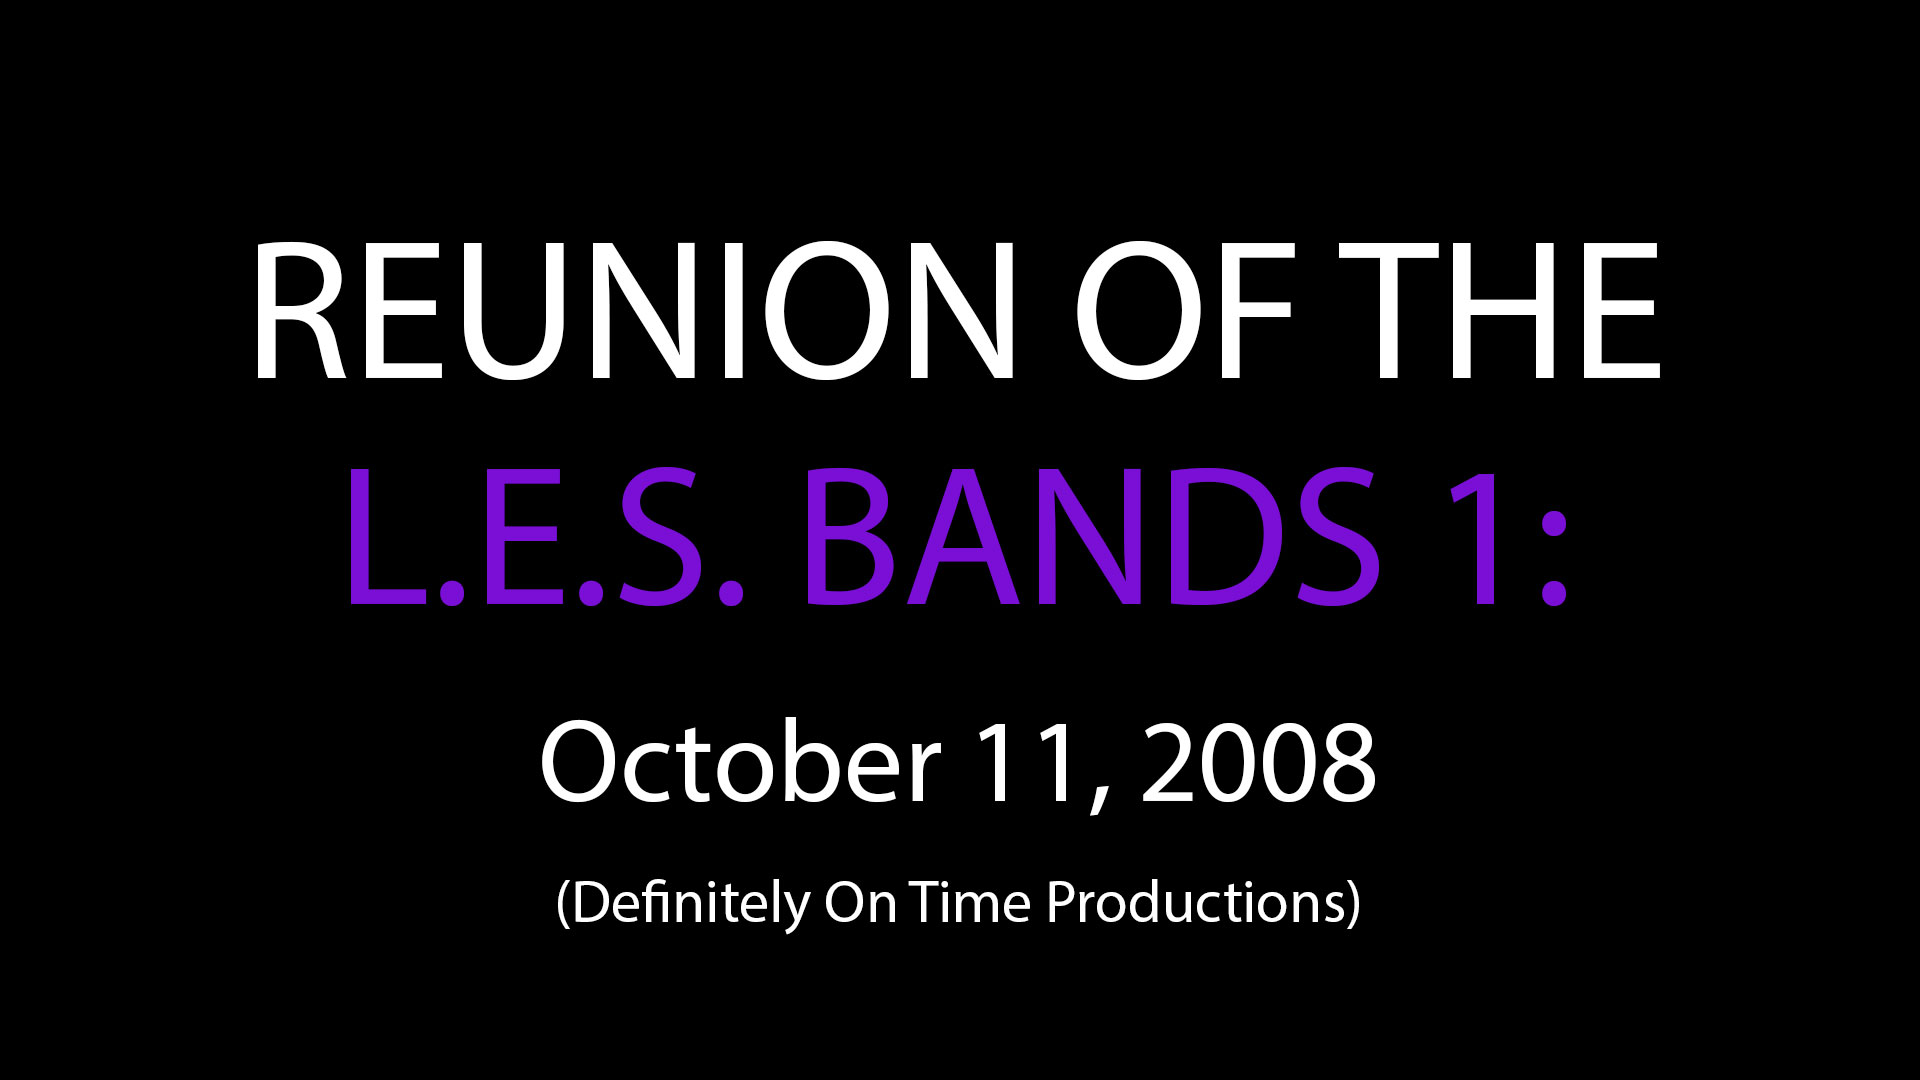 Reunion of the L.E.S Bands 1: 2008